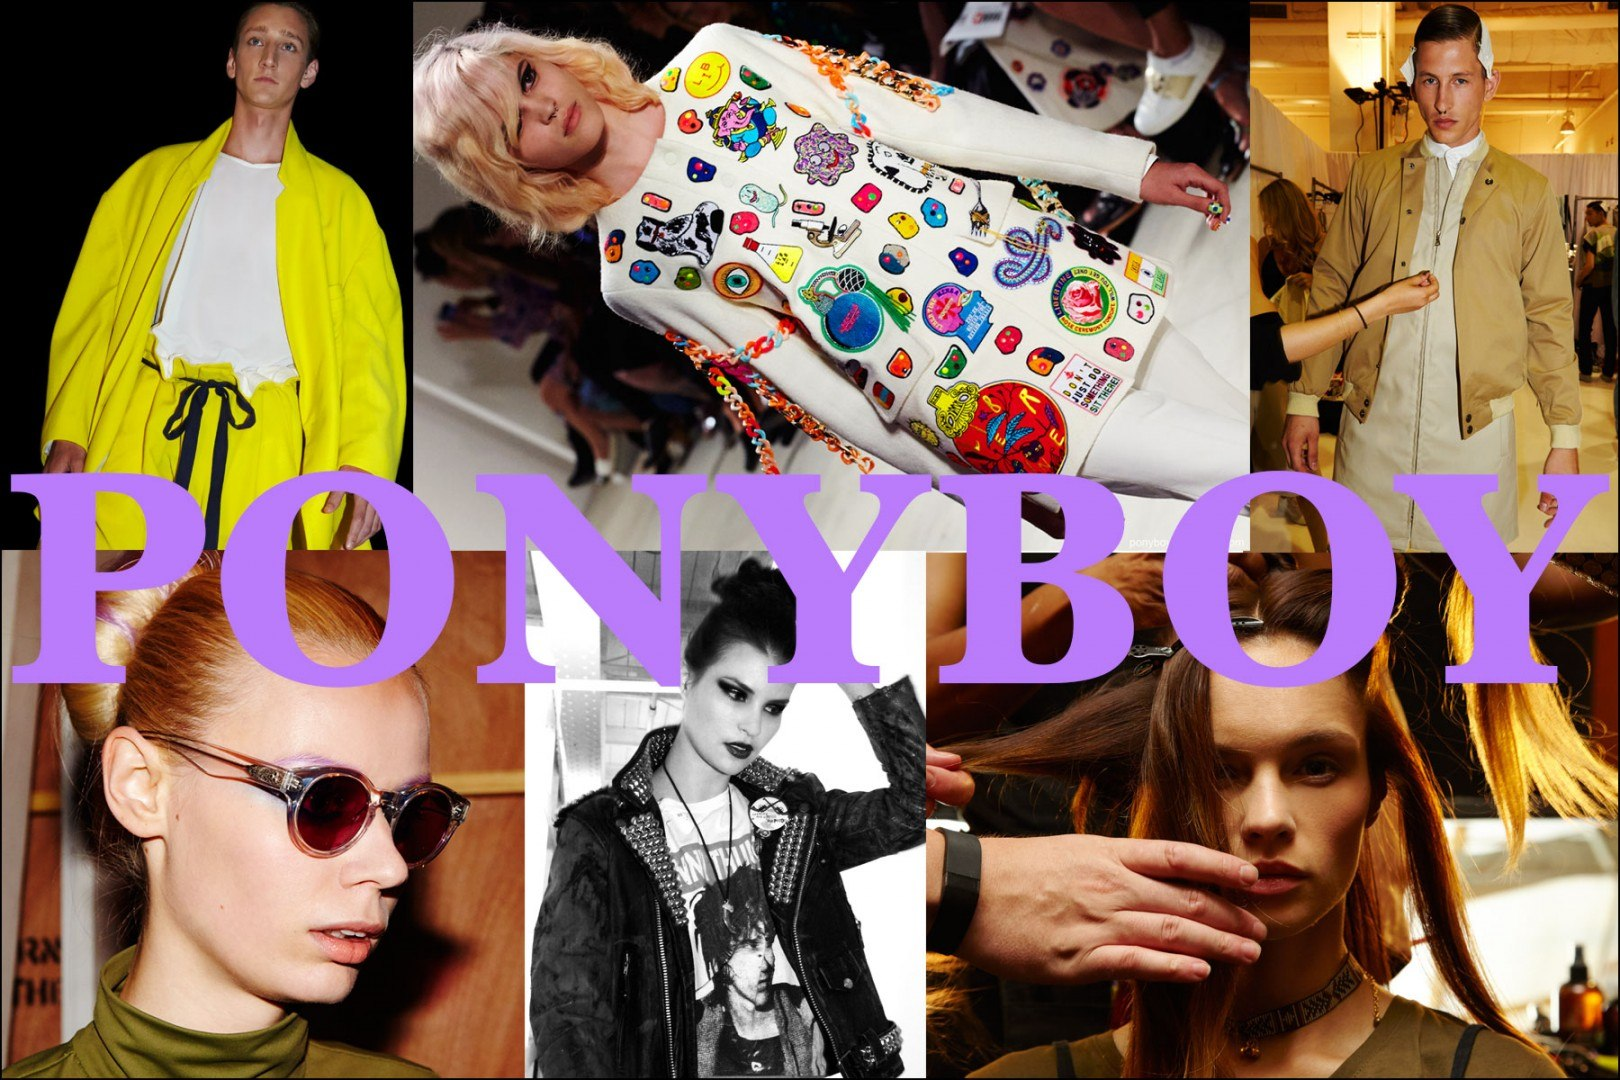 Ponyboy-ABOUT-Collage-5F